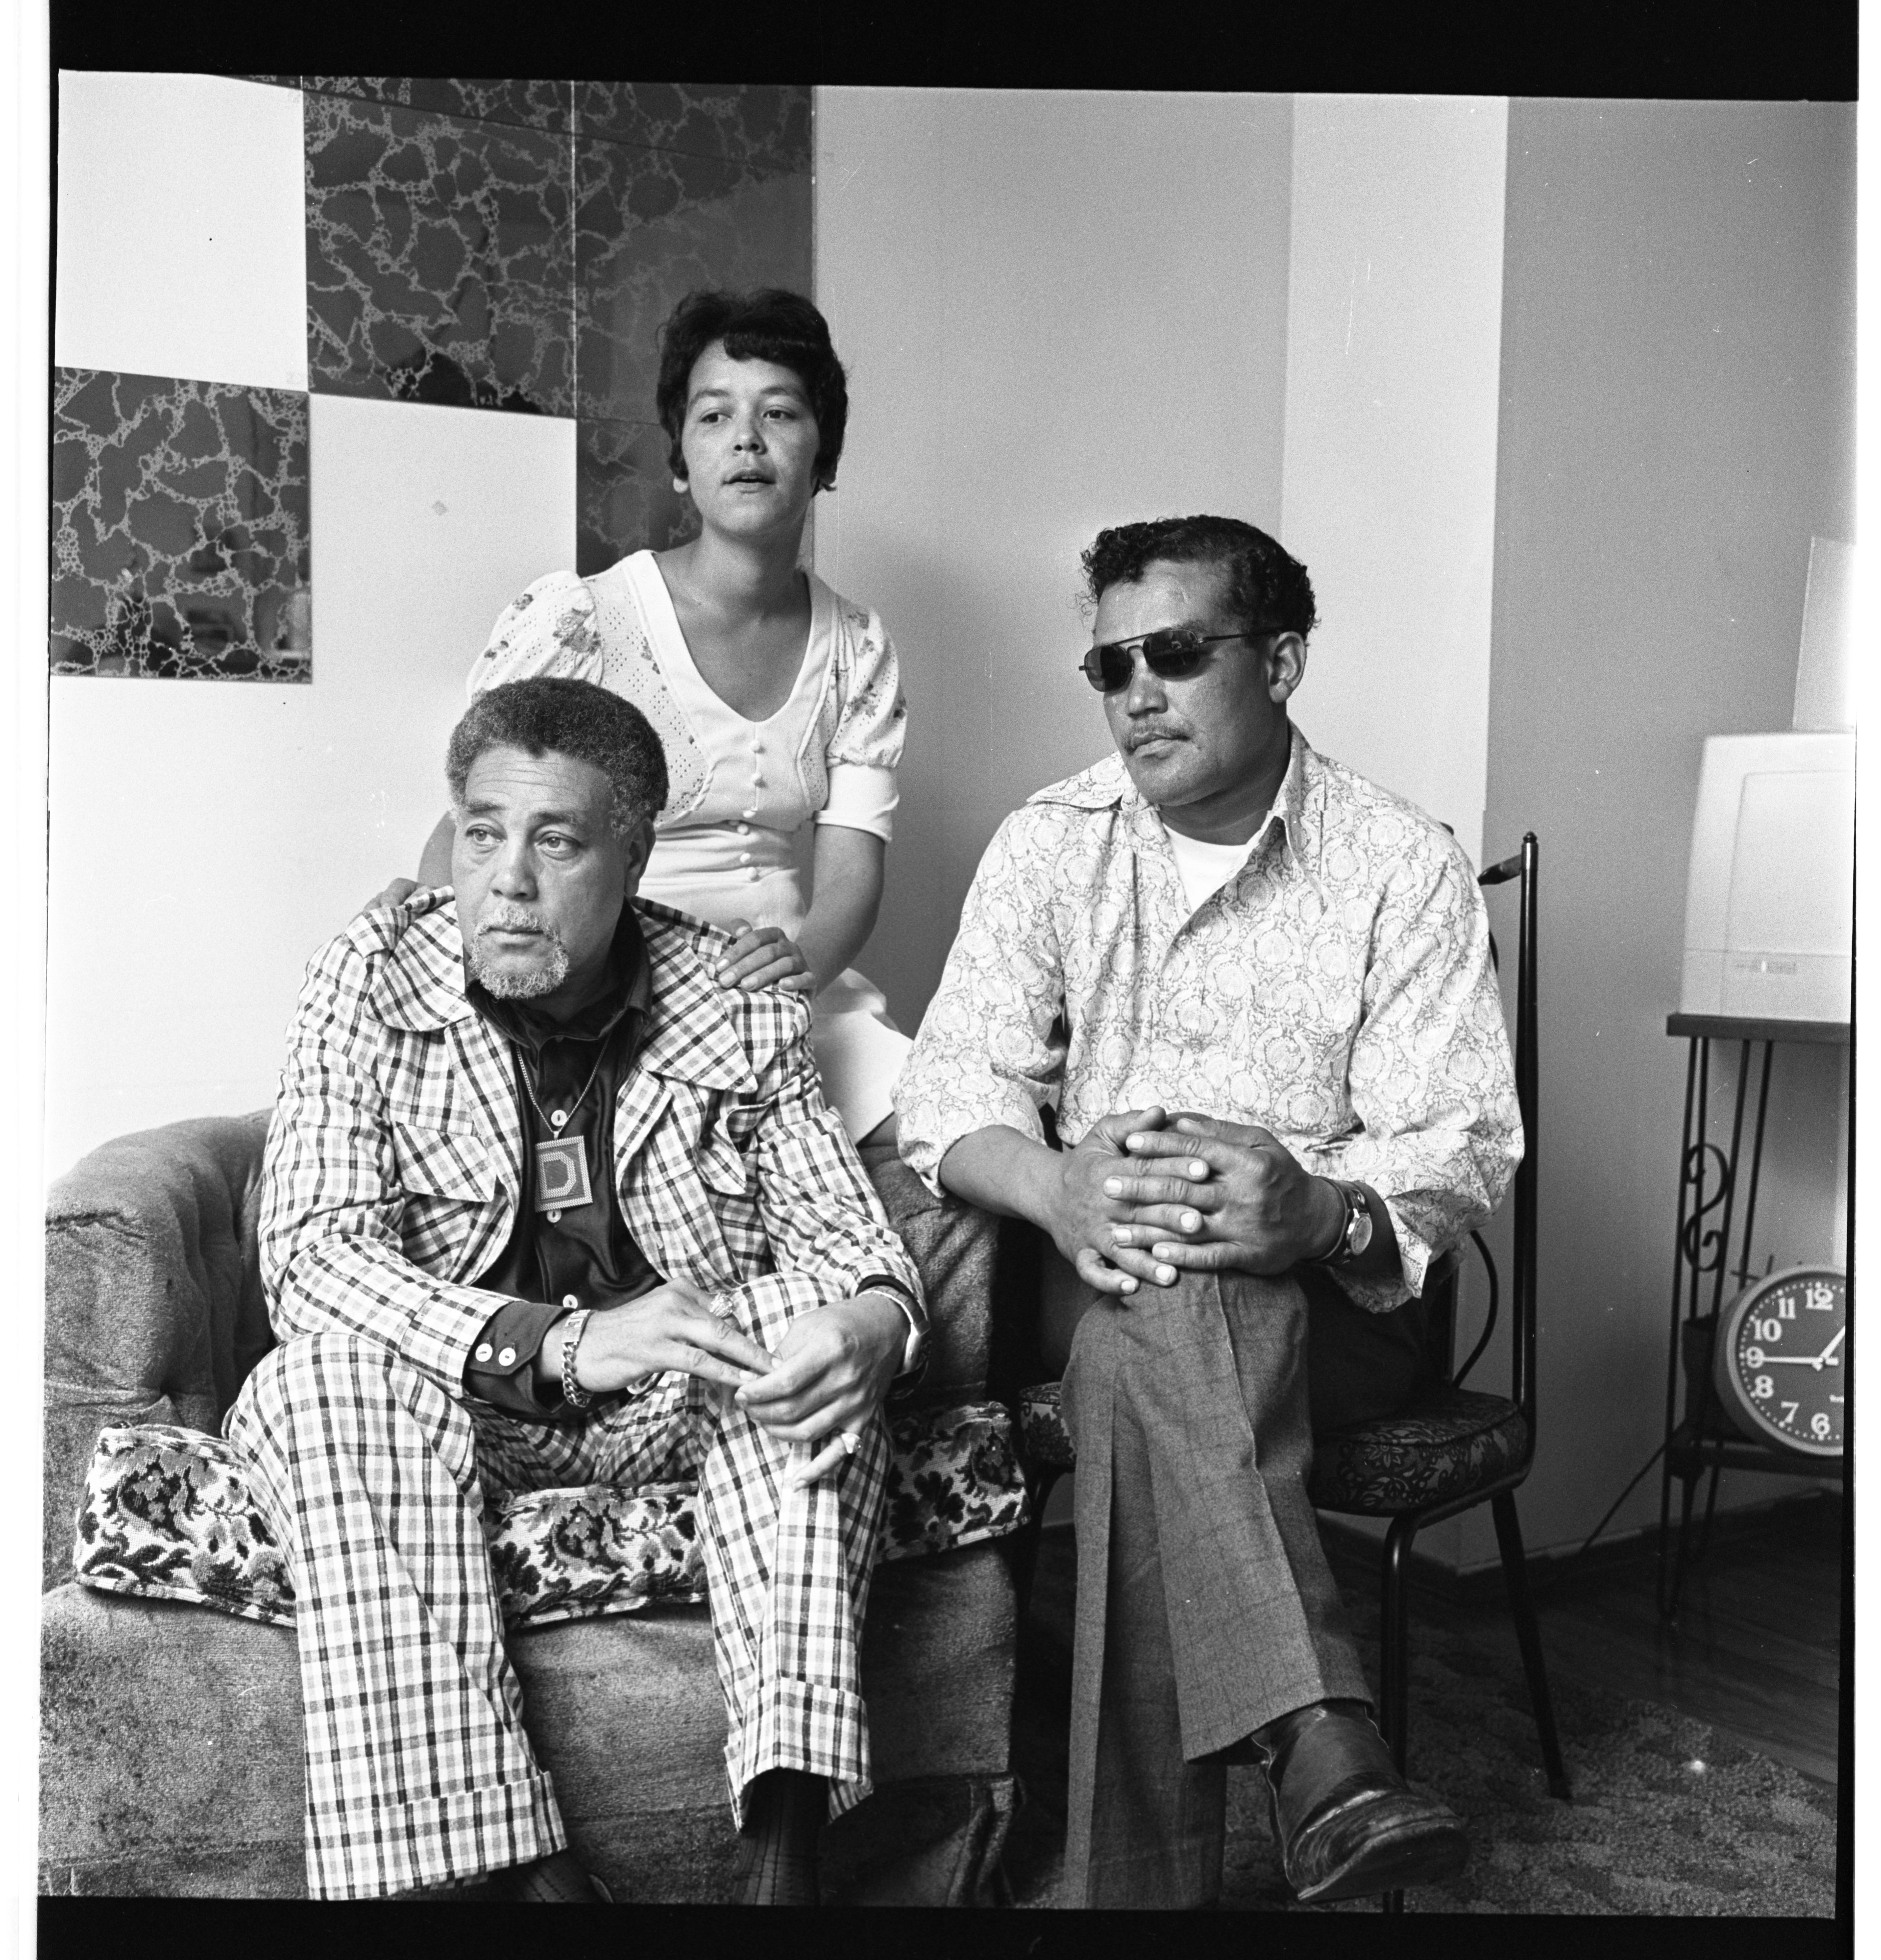 James Duck, Margaret Grisham, and Kenneth Johnson, July 1974 image